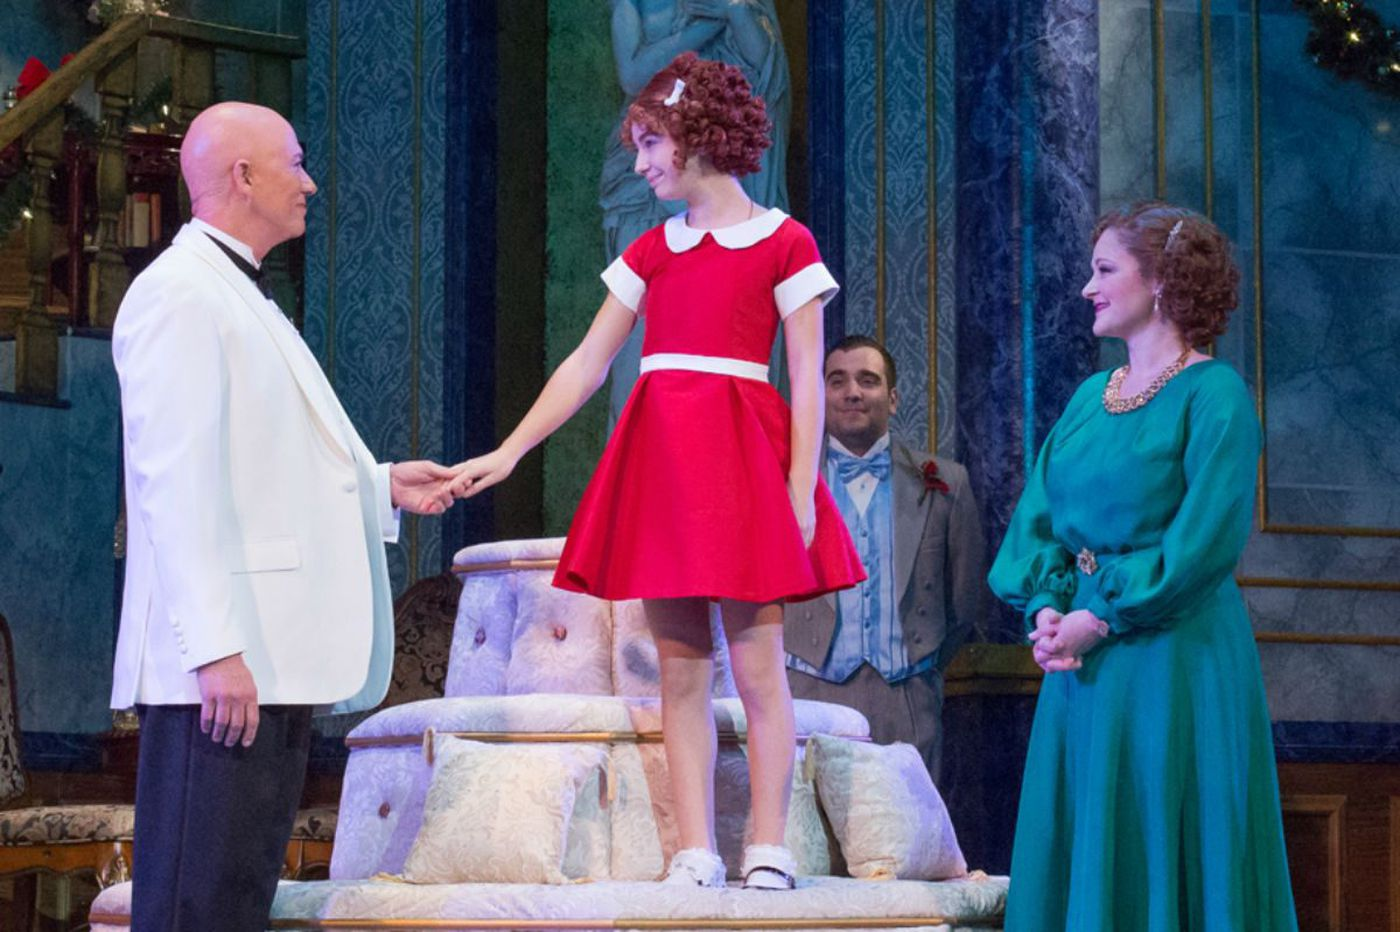 'Annie' at Walnut Theatre: No leapin' lizards here